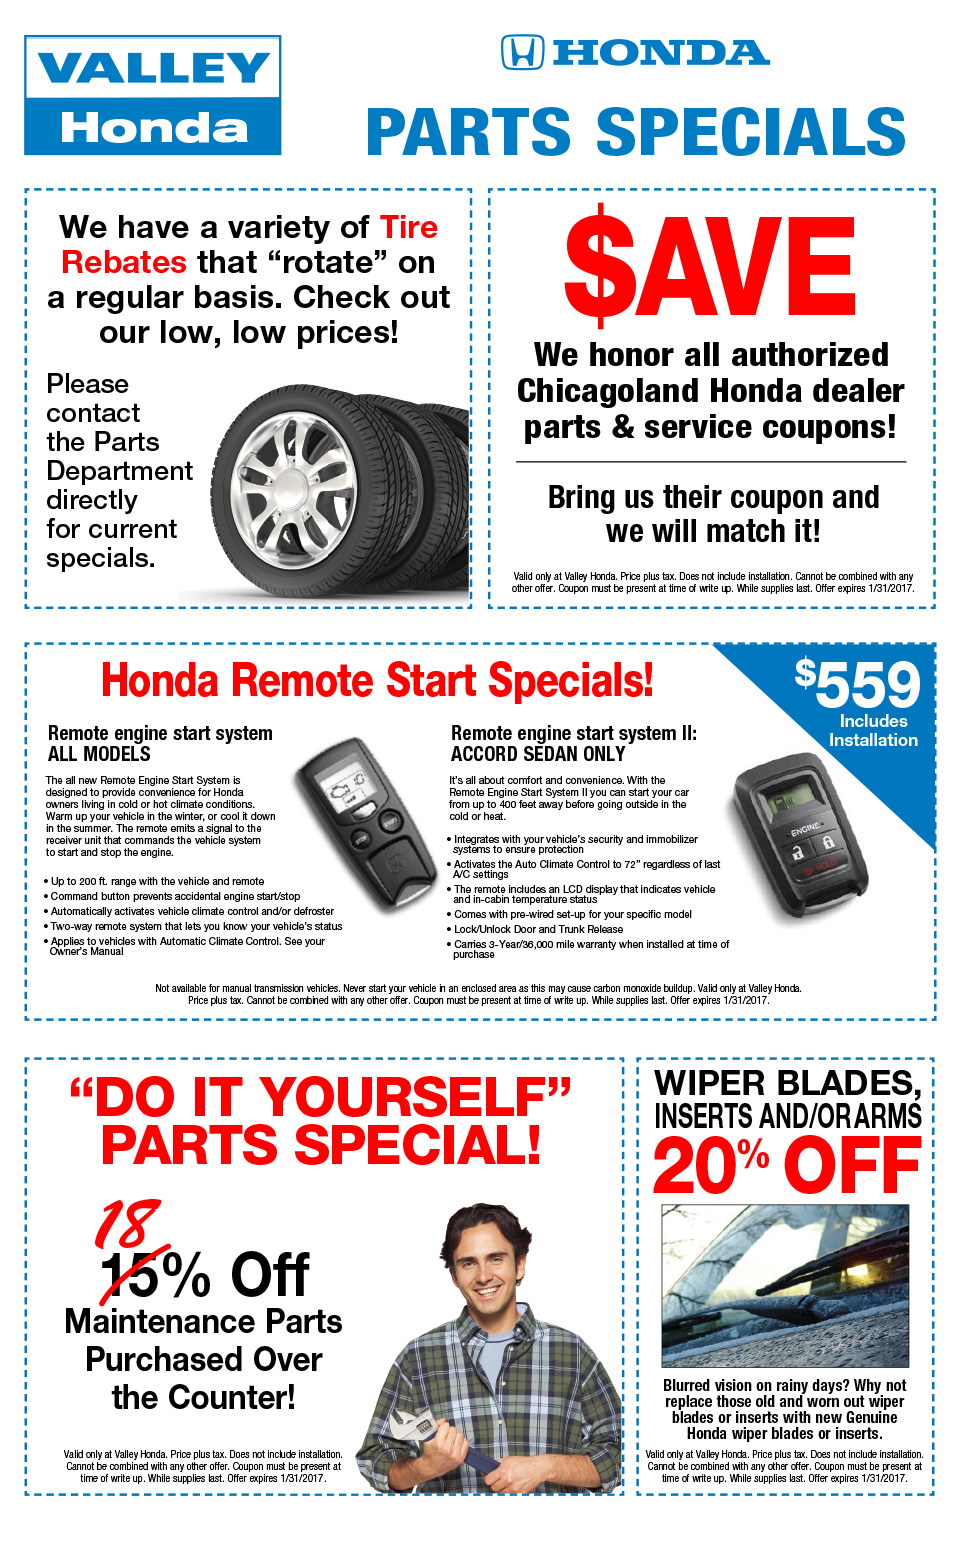 Certified Pre Owned Honda >> Auto Part Specials Coupons - Honda CRV, Odyssey, Accord ...